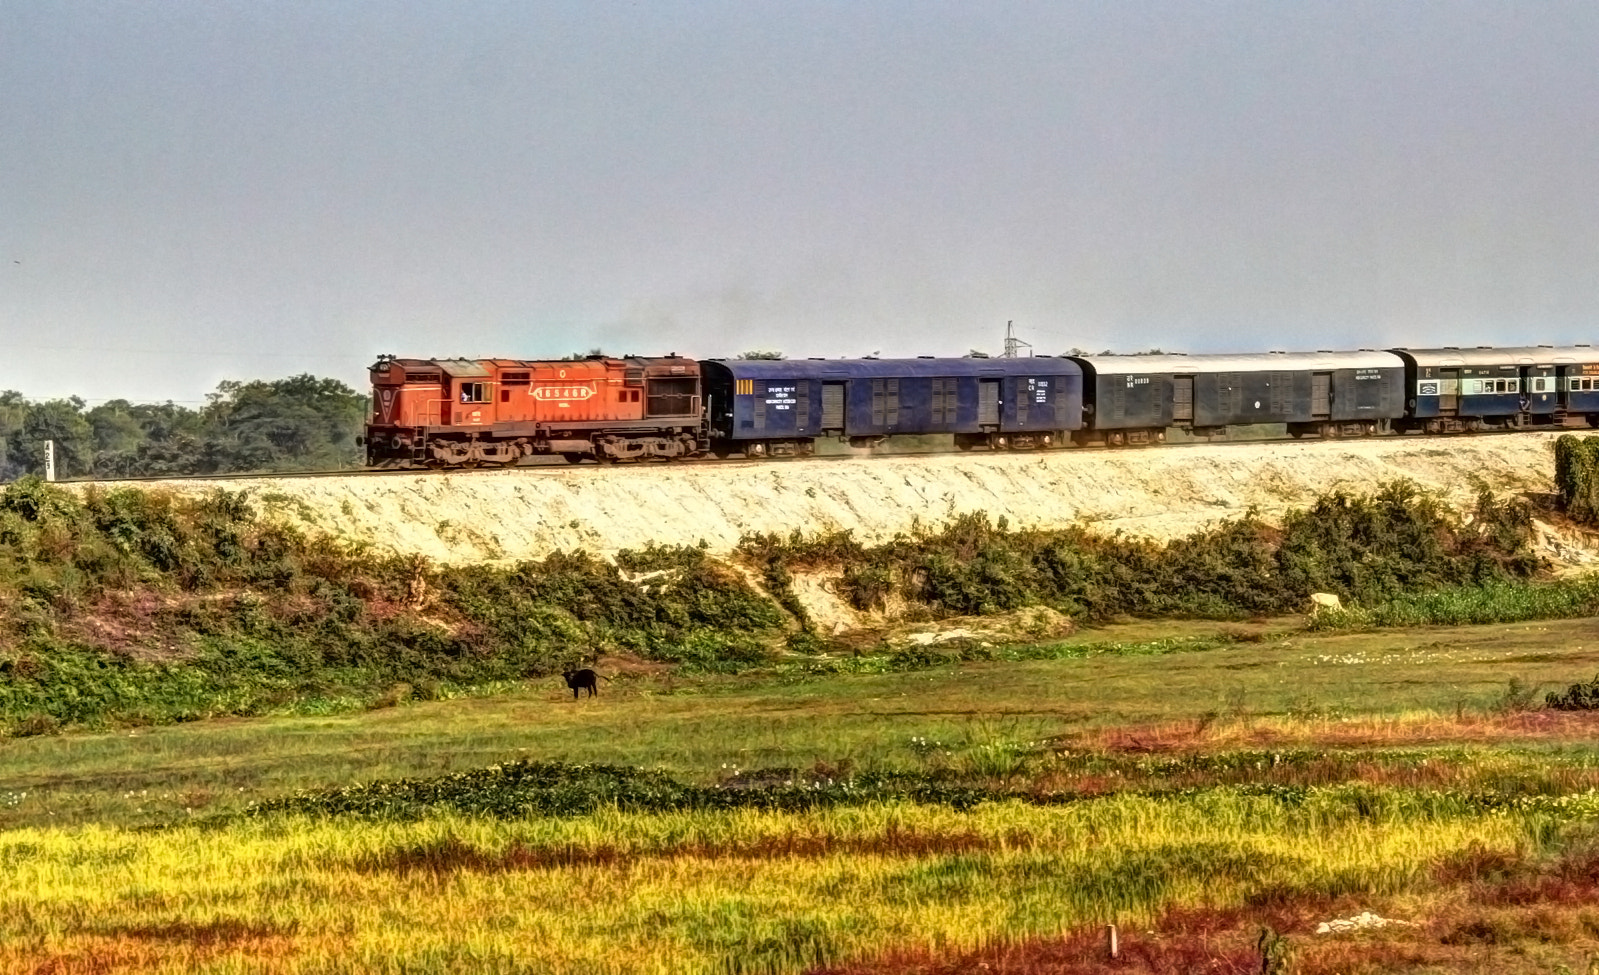 Photograph The Indian Railway by Santanu Banerjee on 500px